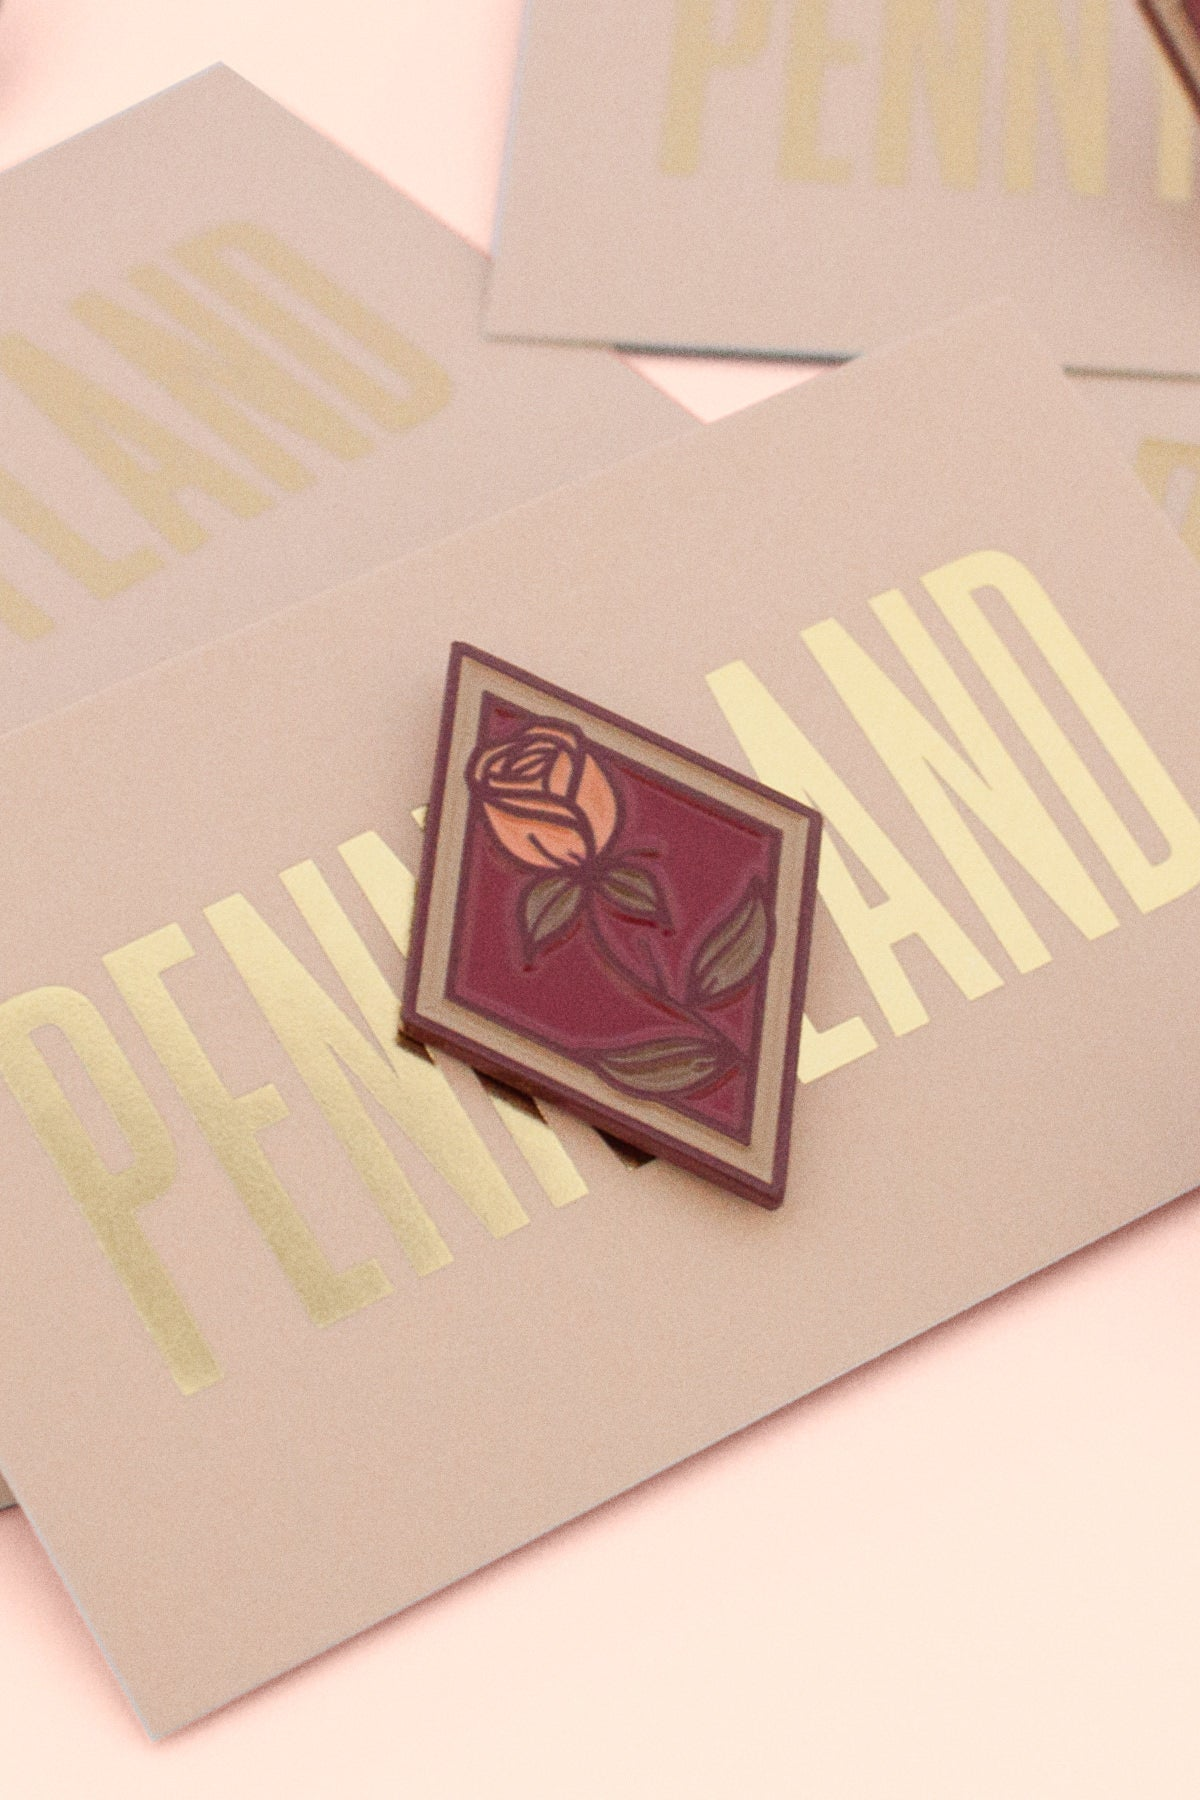 The Diamonds Enamel Pin